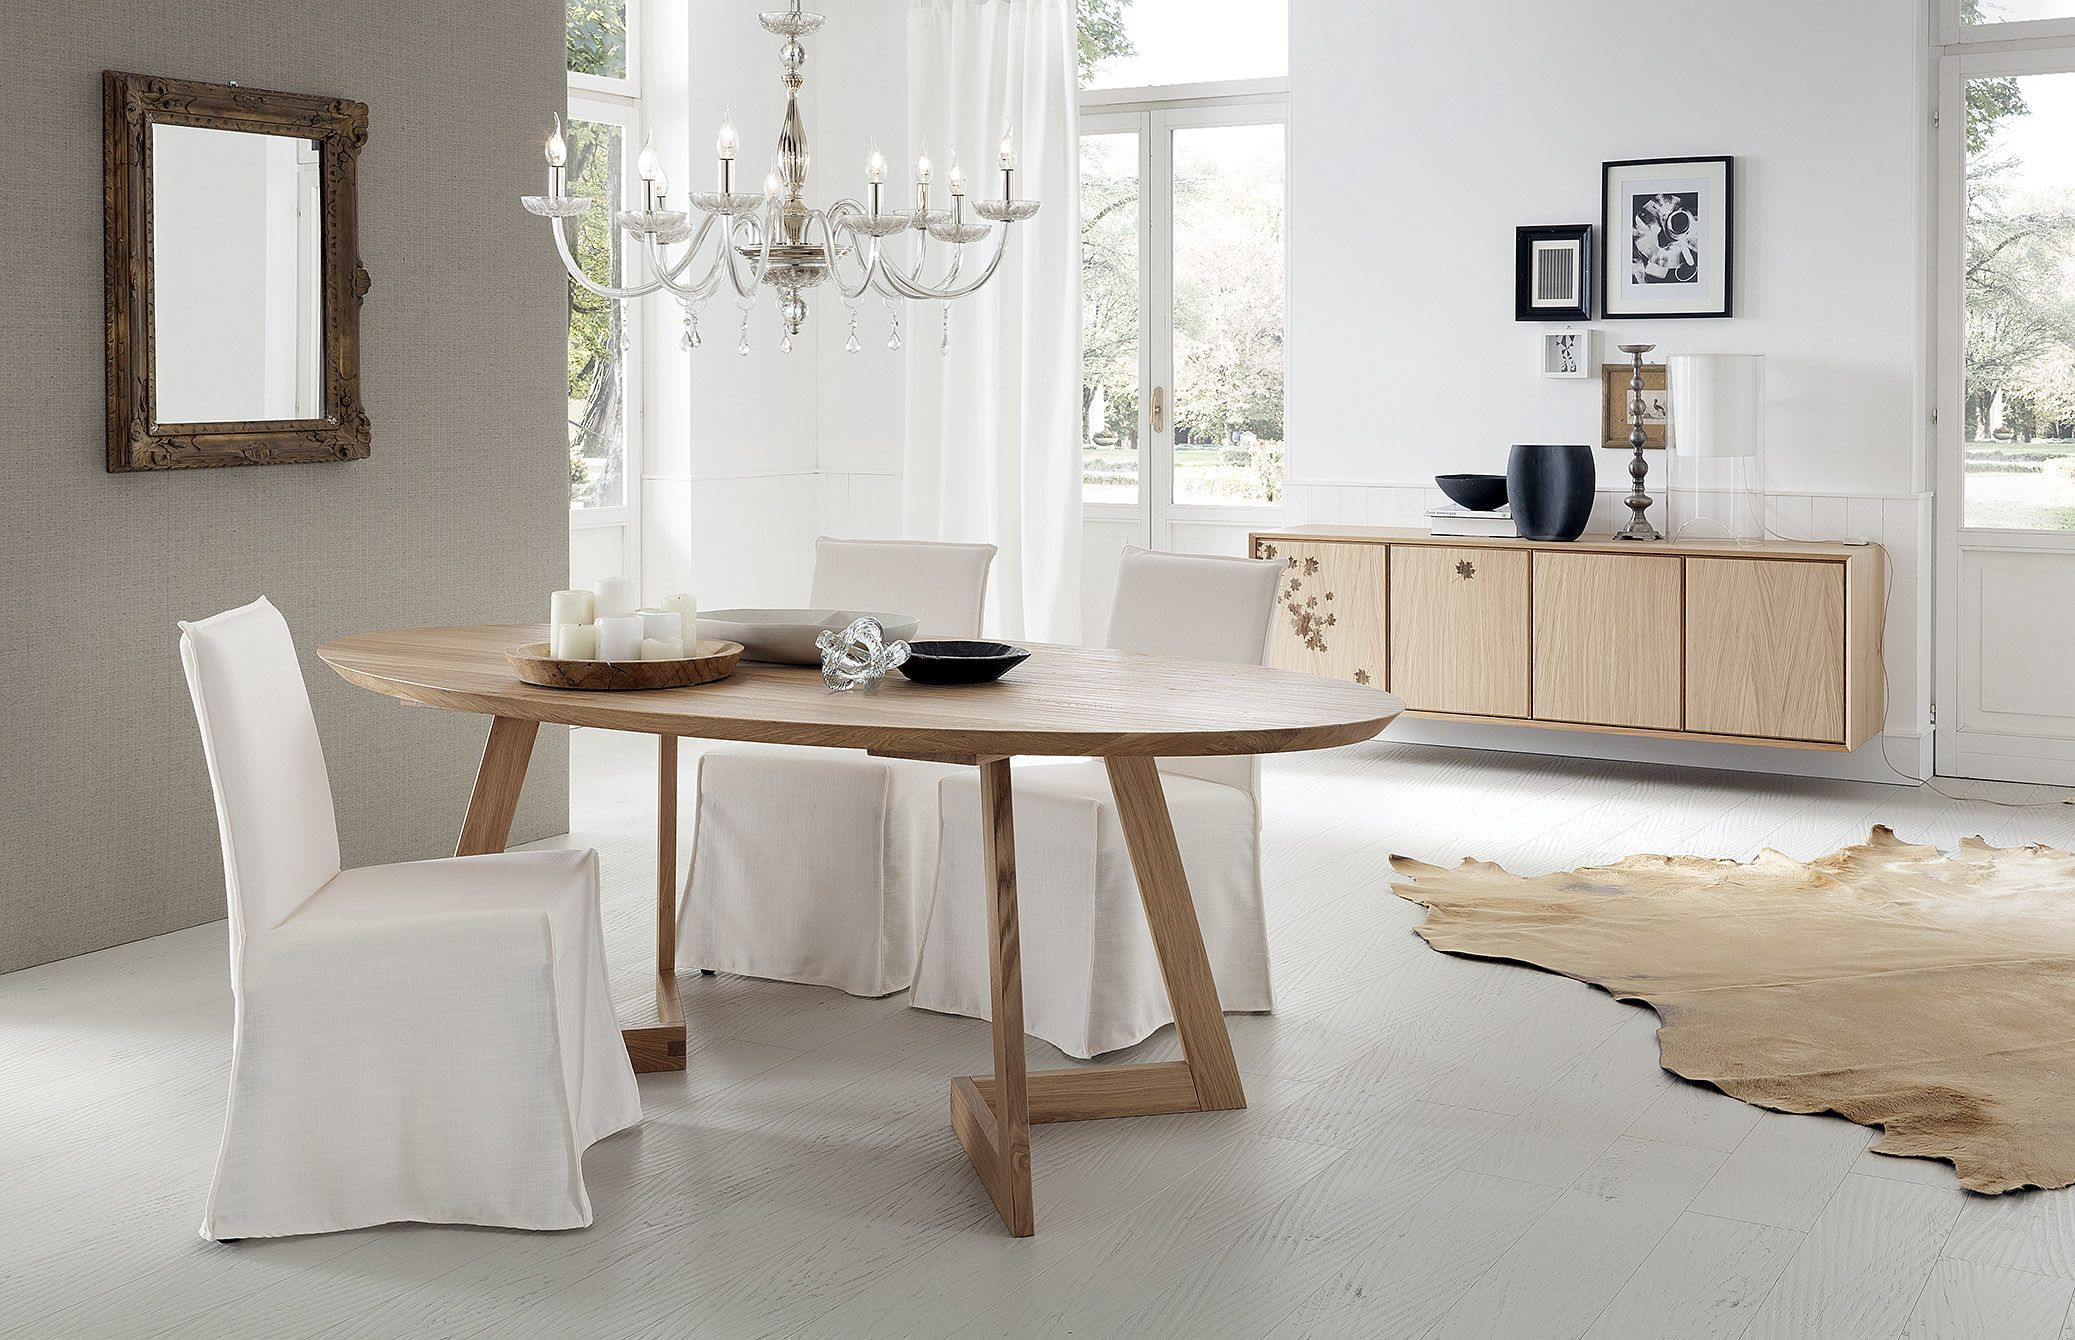 Toledo Table With Seven Legs By Altacorte Ecolab 2 Collection